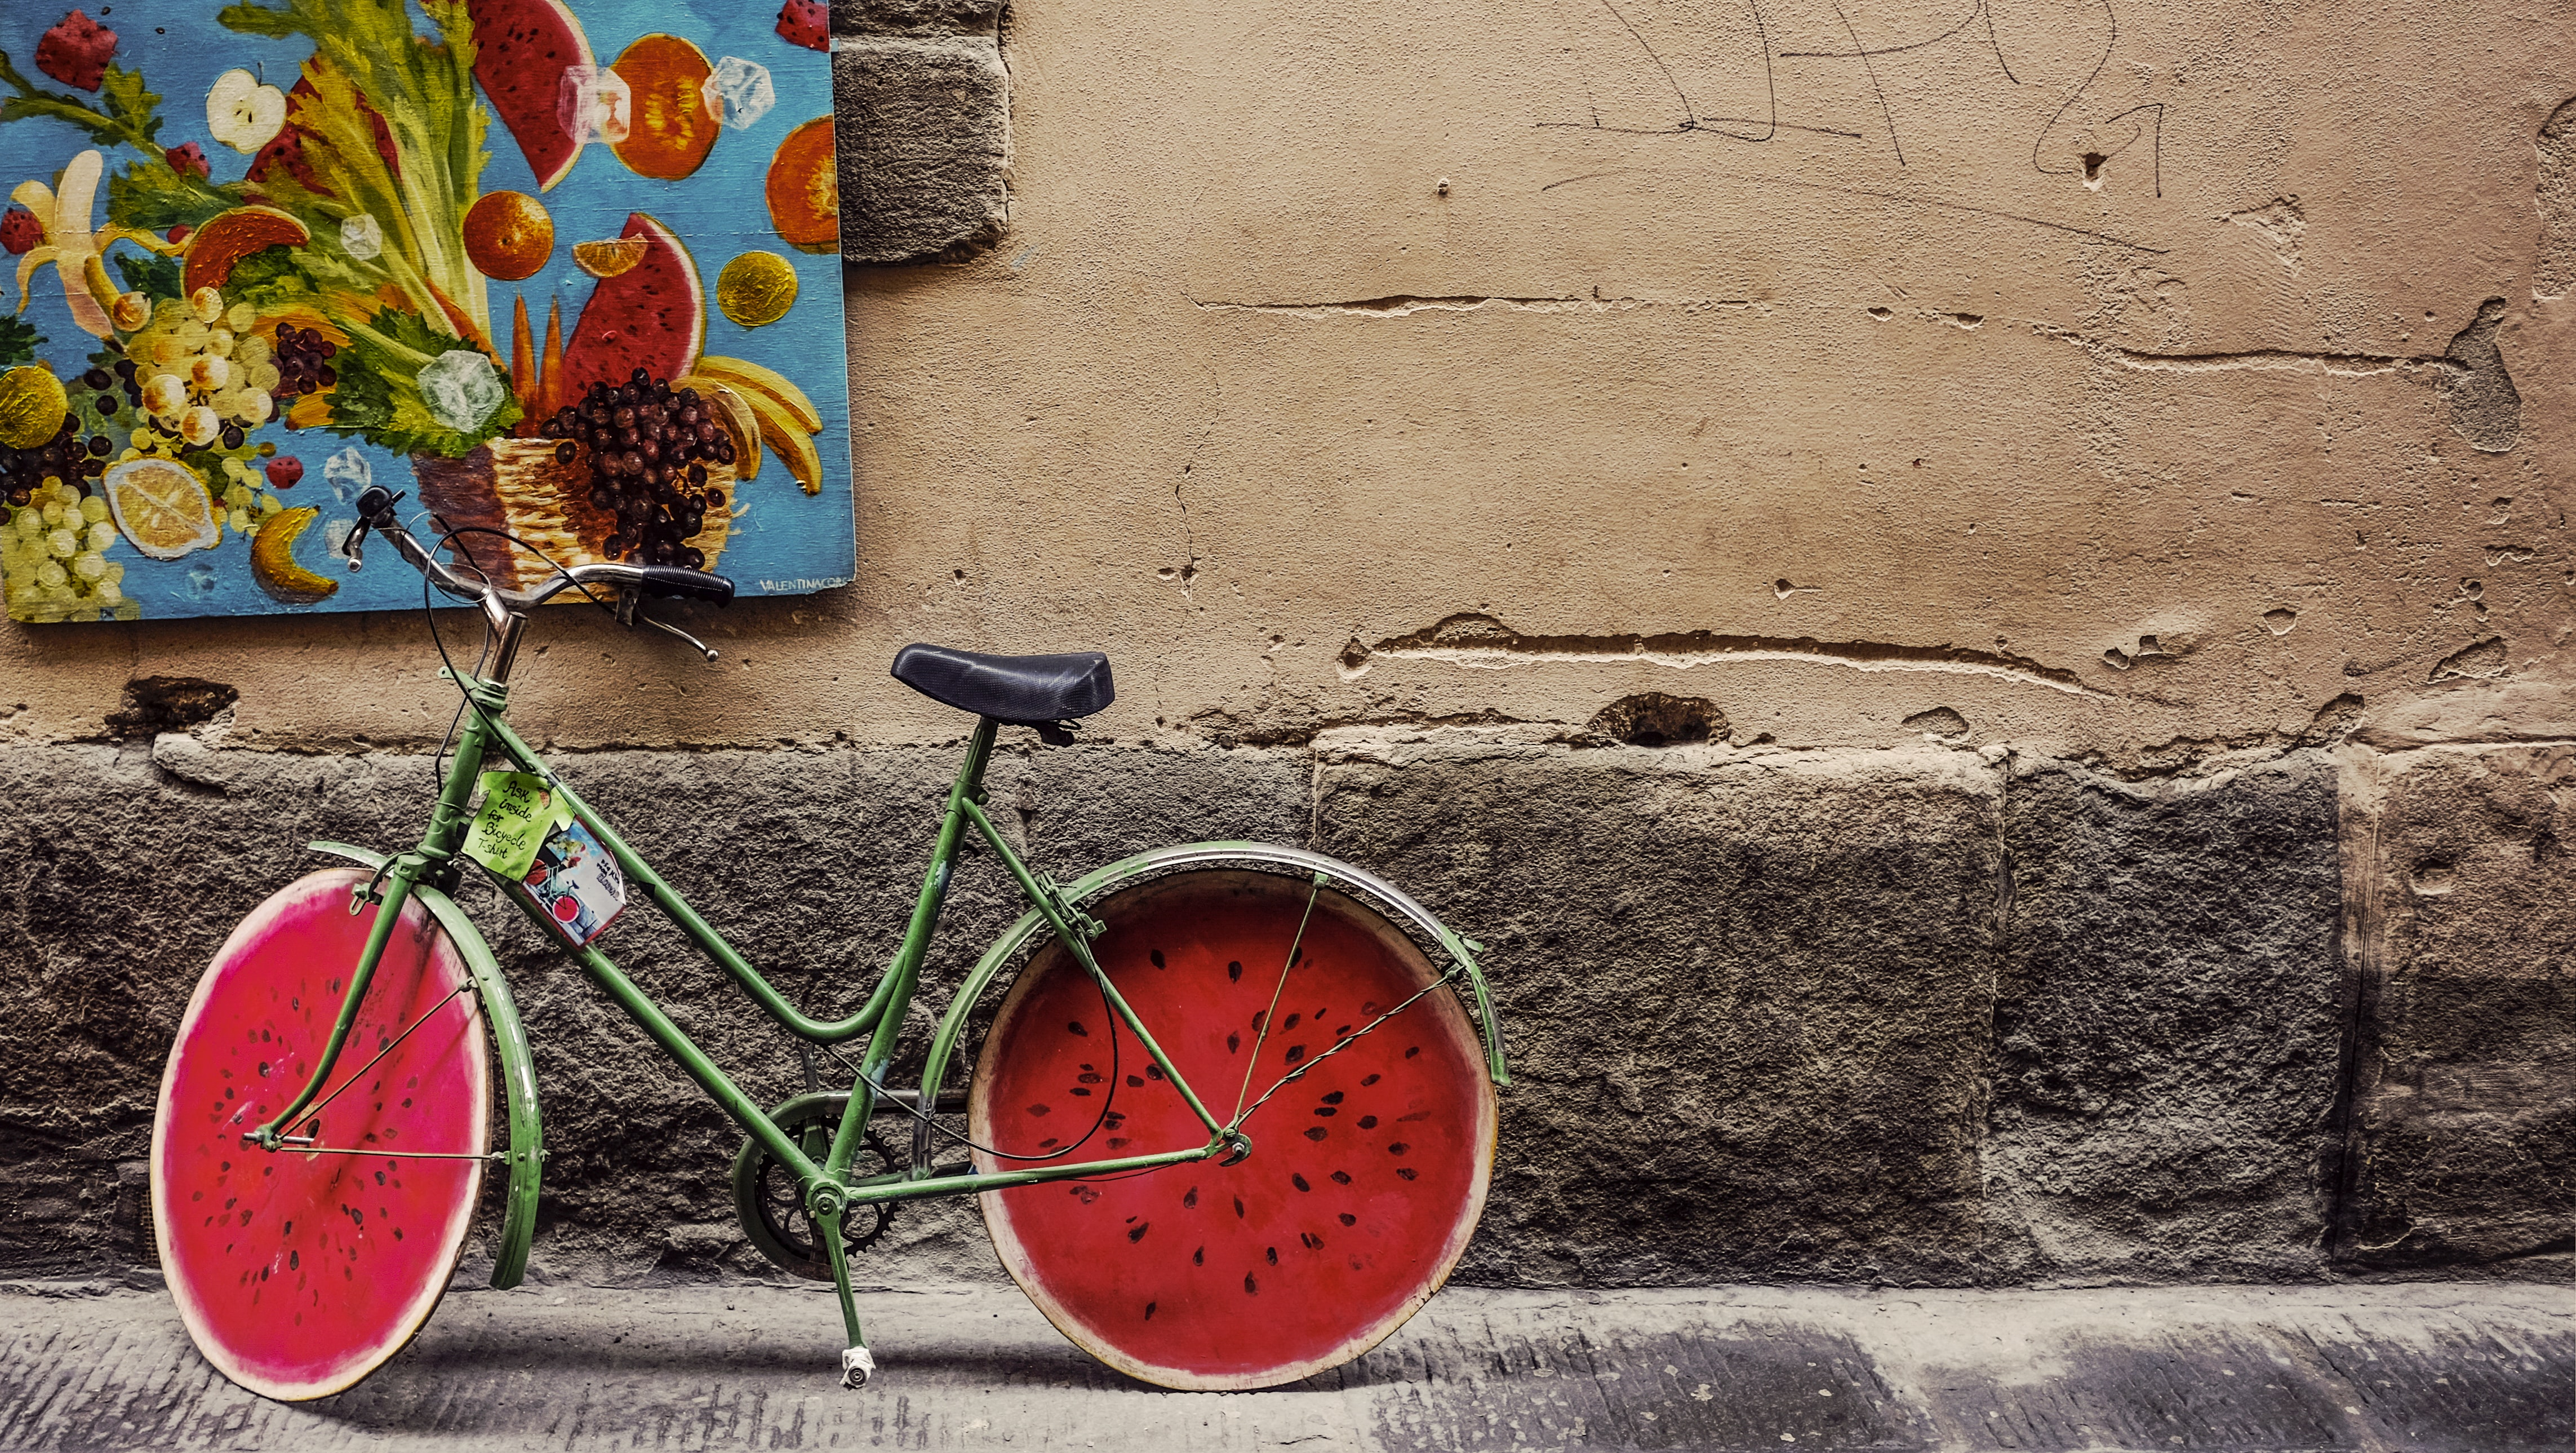 A green bicycle with wheels resembling a cross-section of a watermelon